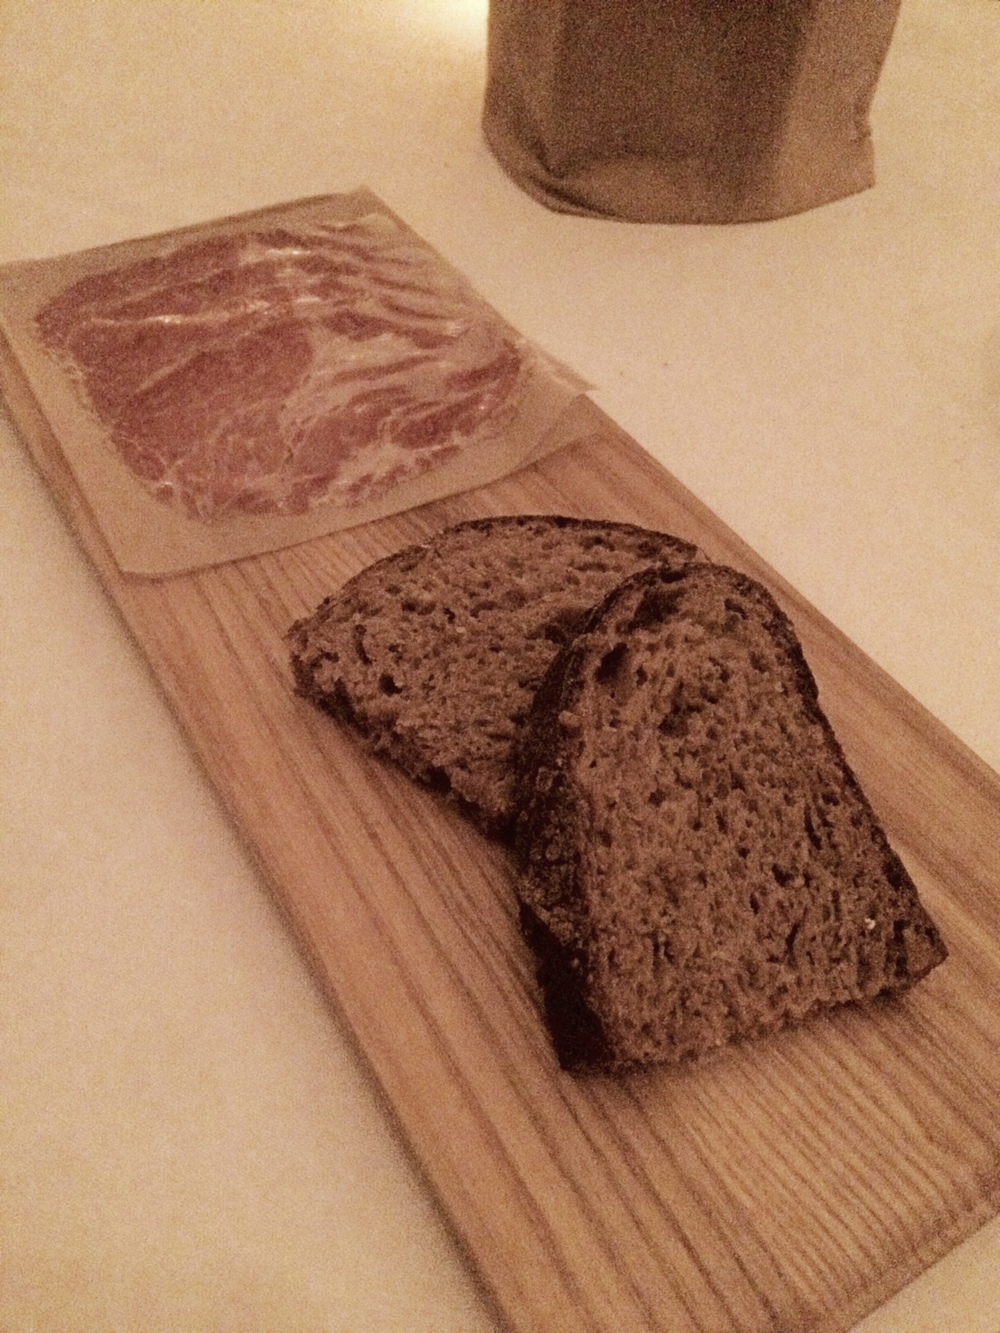 Coppa with sprouted grain bread.